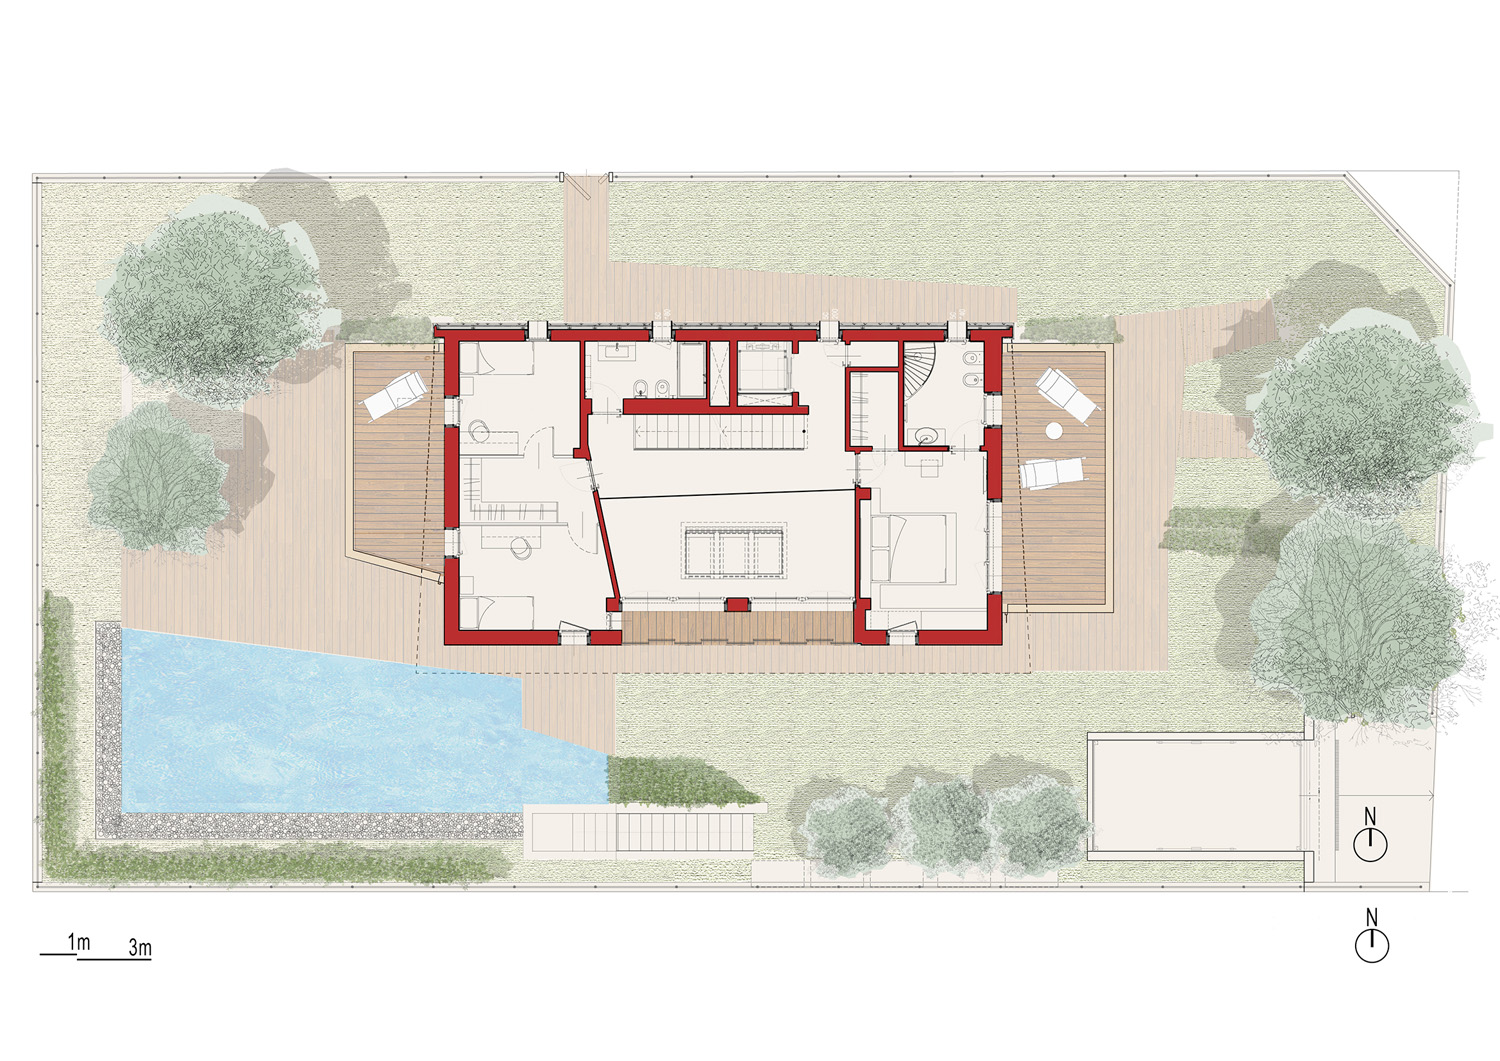 first floor plan angus fiori architects}